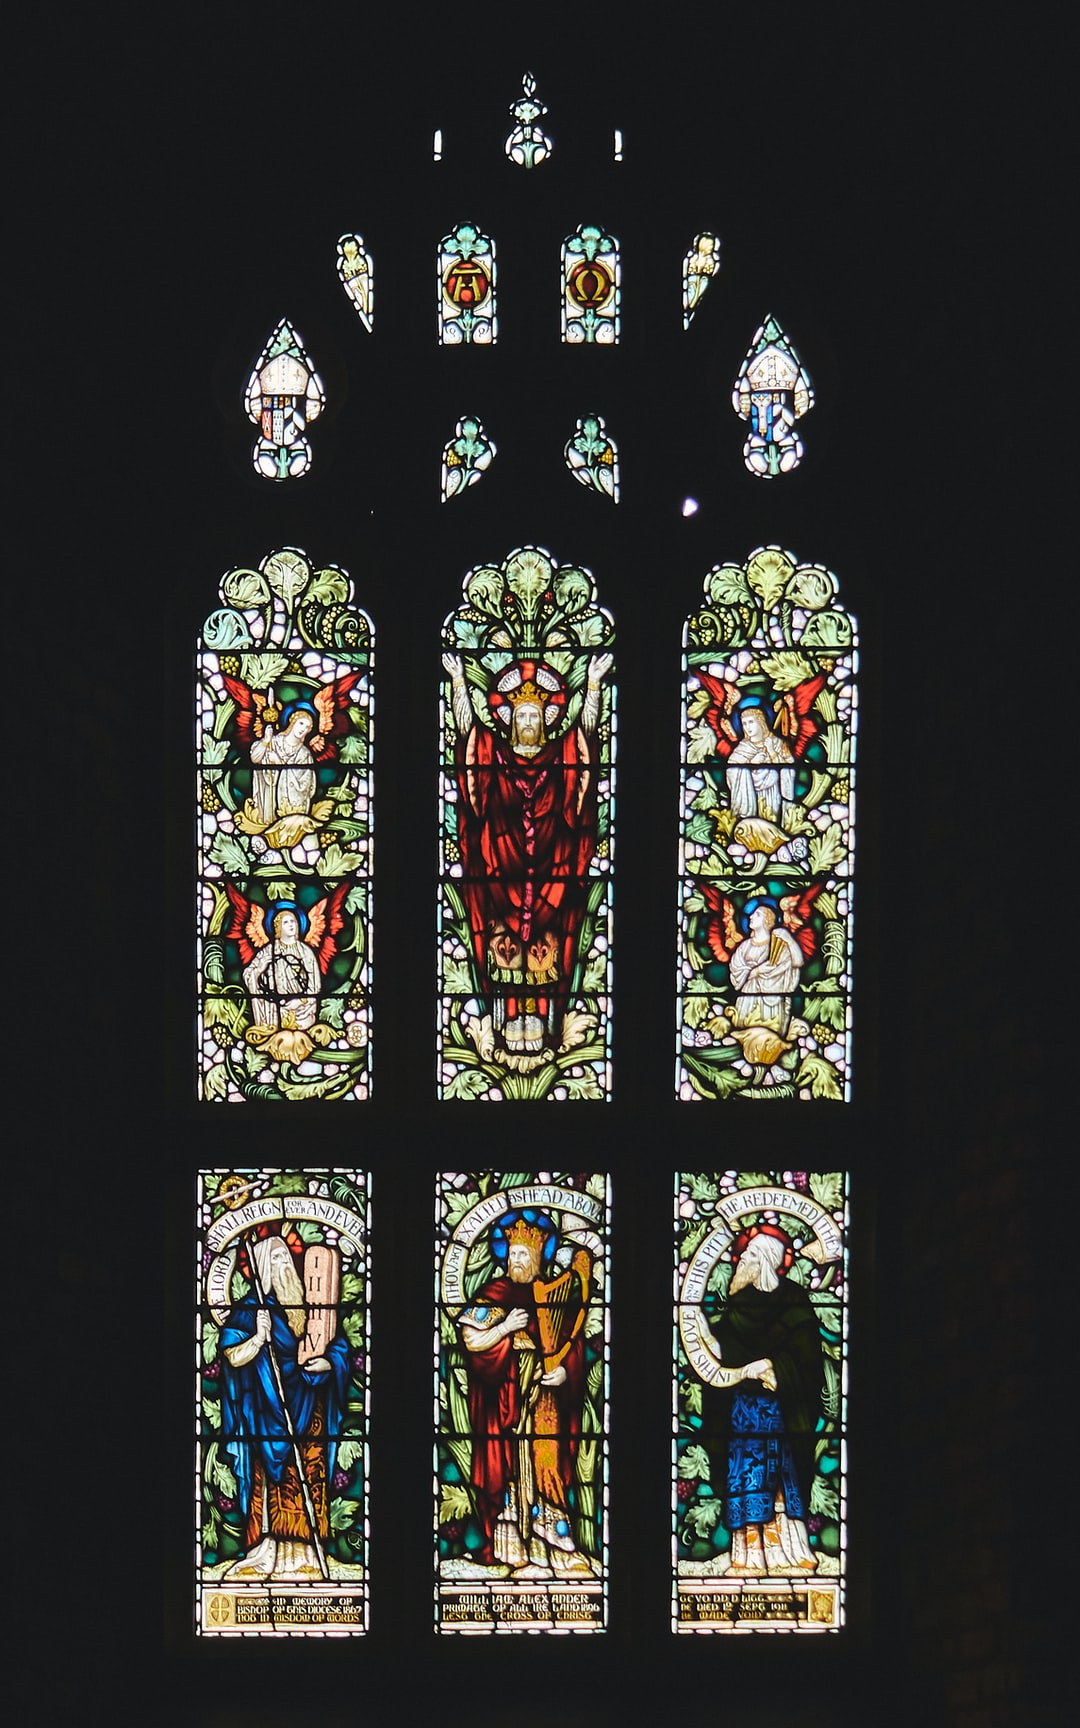 Stained-glass window in St. Columb's Cathedral in Londonderry, Northern Ireland (Nov., 2019)